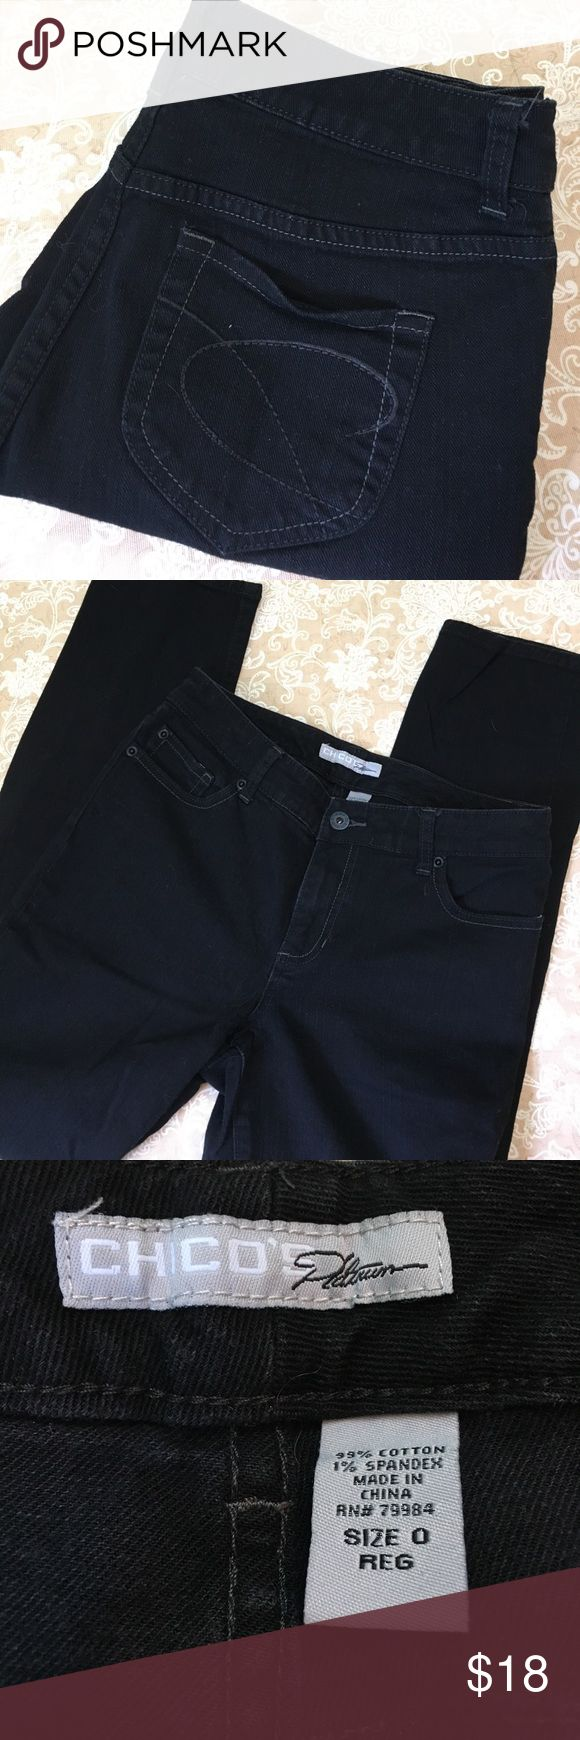 Chico's Black Ultimate Fit Slim Leg Jeans Great pair of black Chicos jeans ultimate fit slim leg. 99% cotton 1% spandex.  New condition.  Size 0 = size 4.  See chart in photo.  Waist measured flat 15 inches, rise 9 inches and 29 inches. PT157 Chico's Jeans